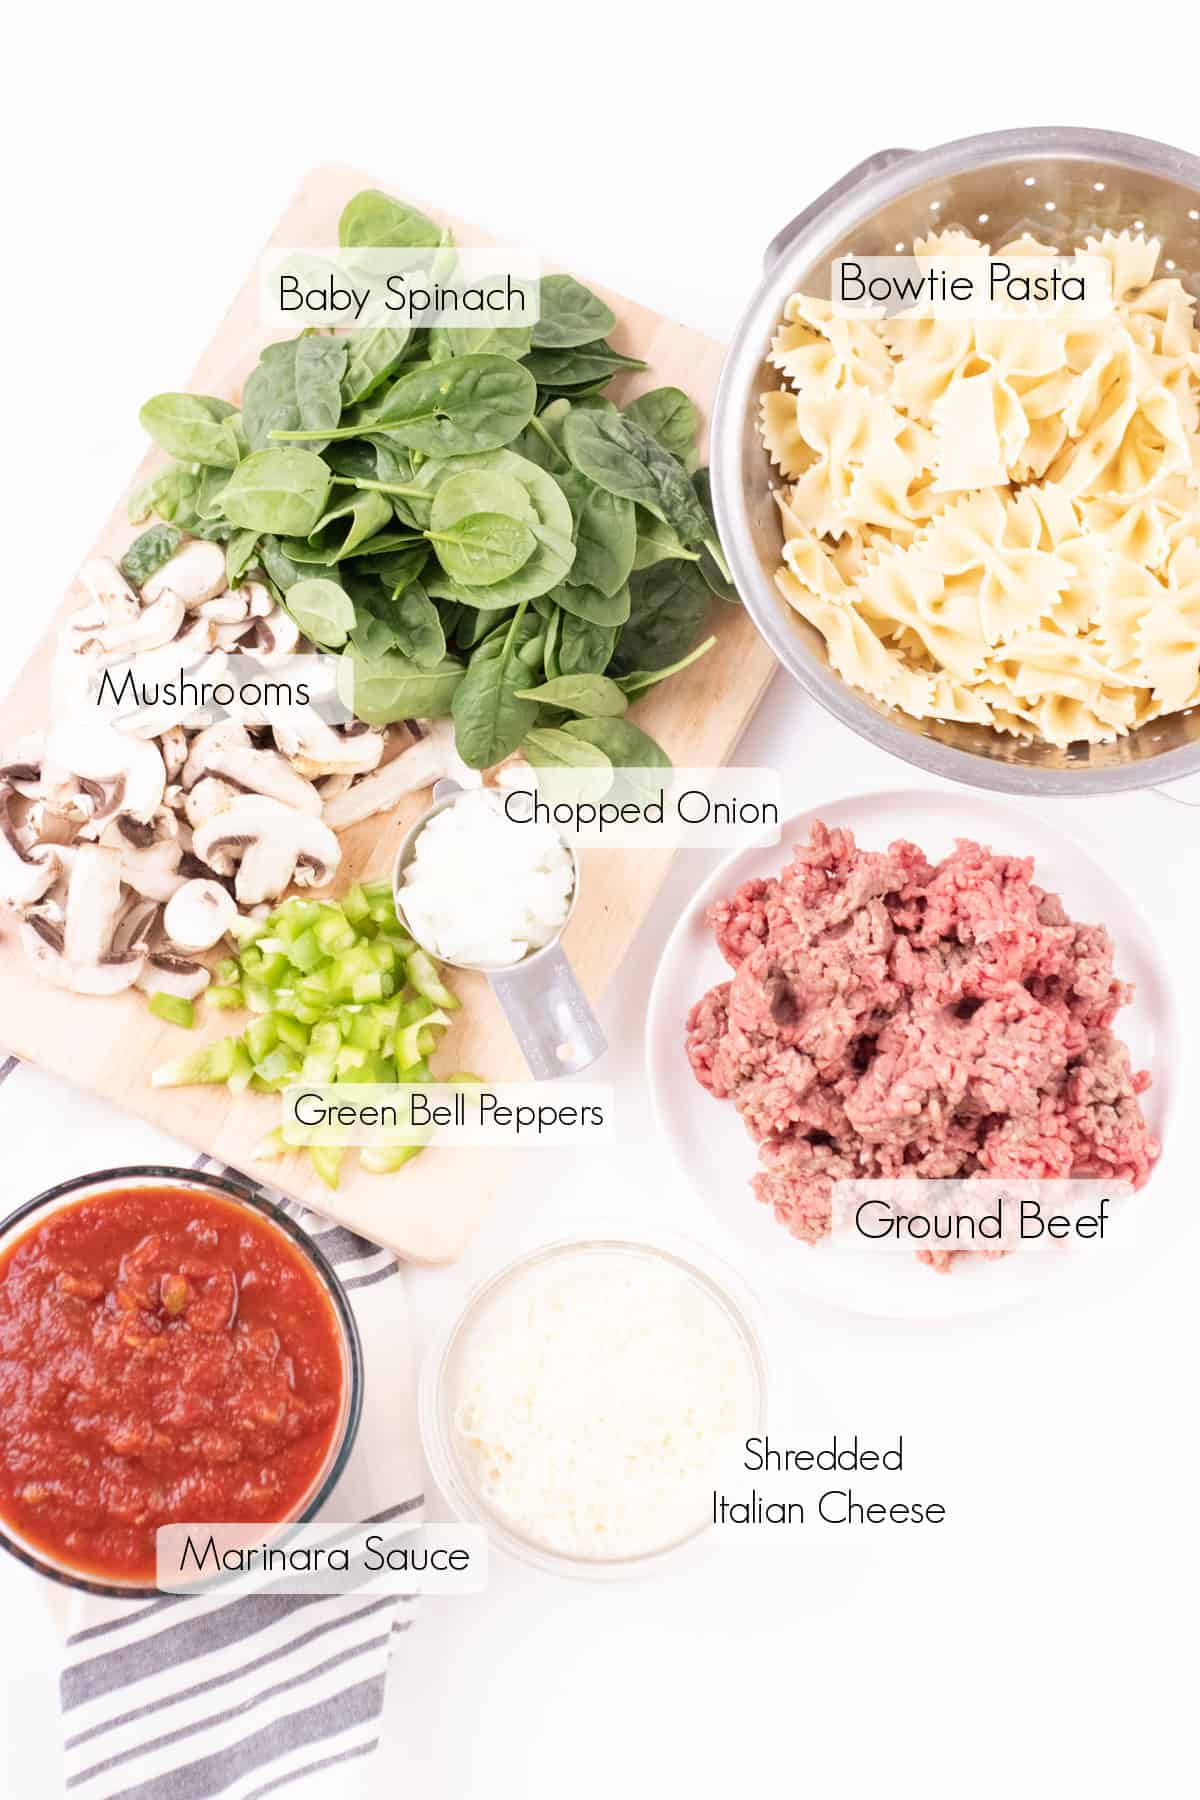 Labeled ingredients to make skillet stovetop lasagna.